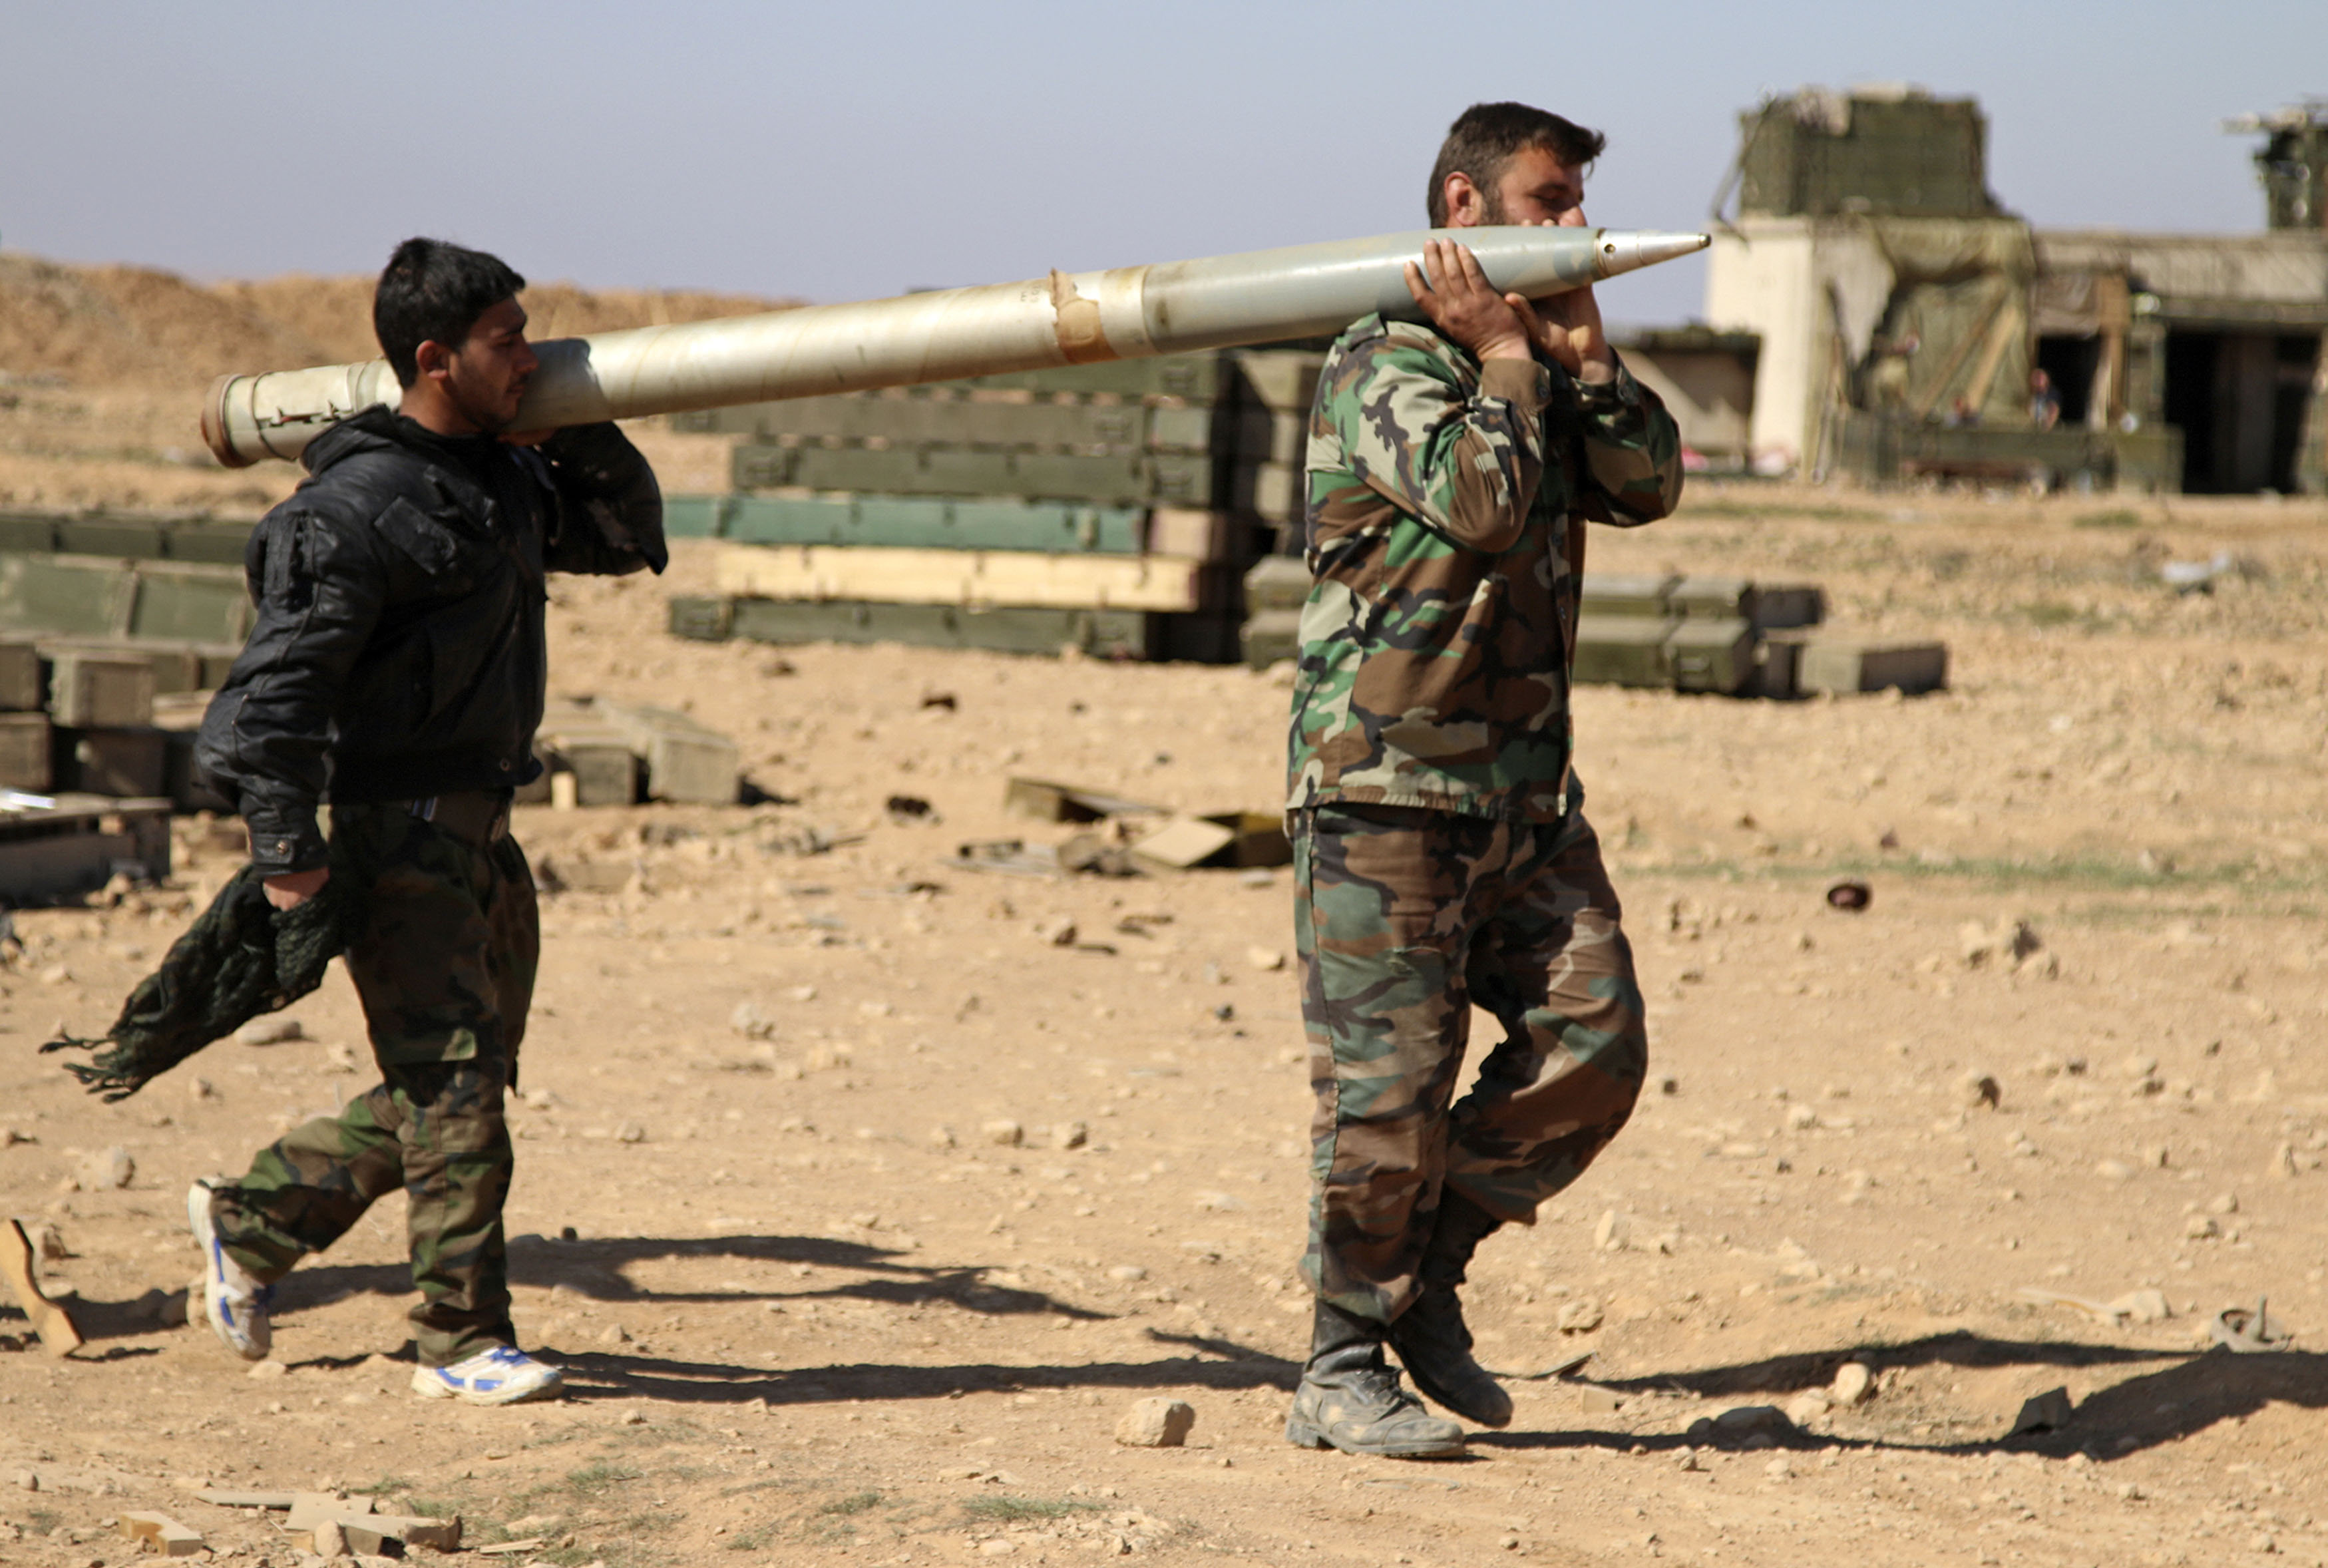 Soldiers from the Syrian army carry a rocket to fire at Daesh positions in the province of Raqqa, Syria